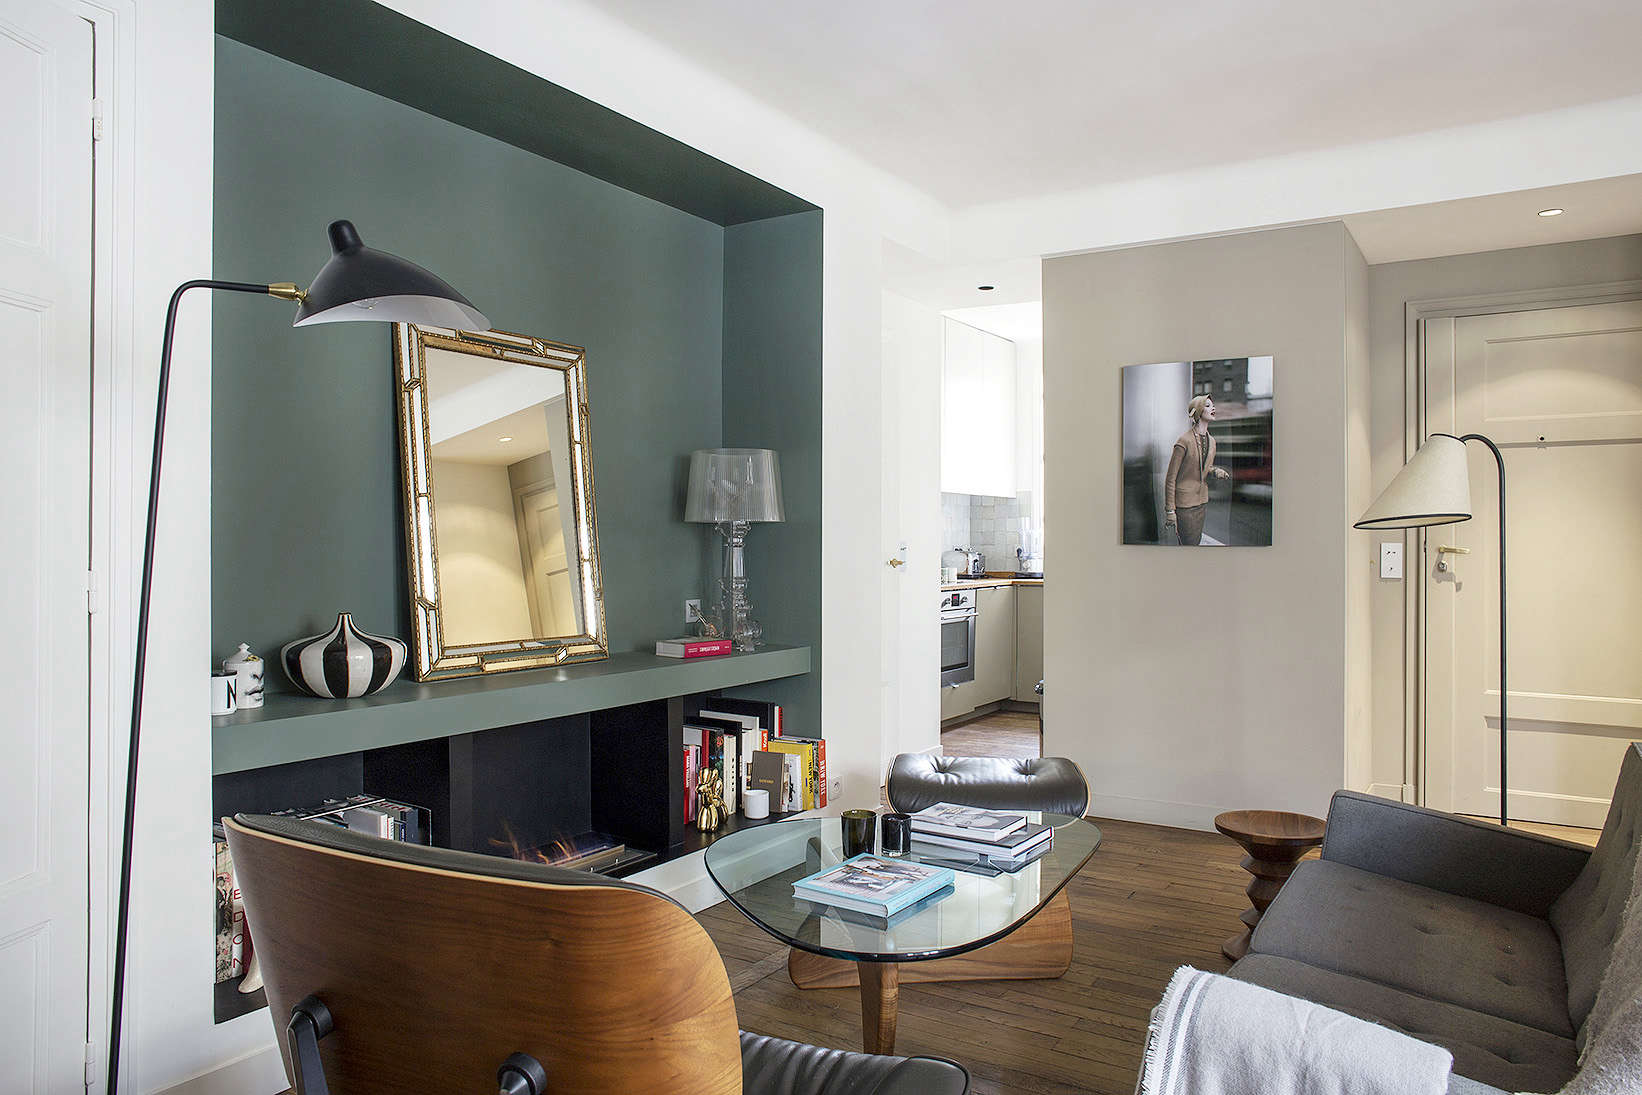 9 small space ideas to steal from a tiny paris apartment - Small space room ideas ...